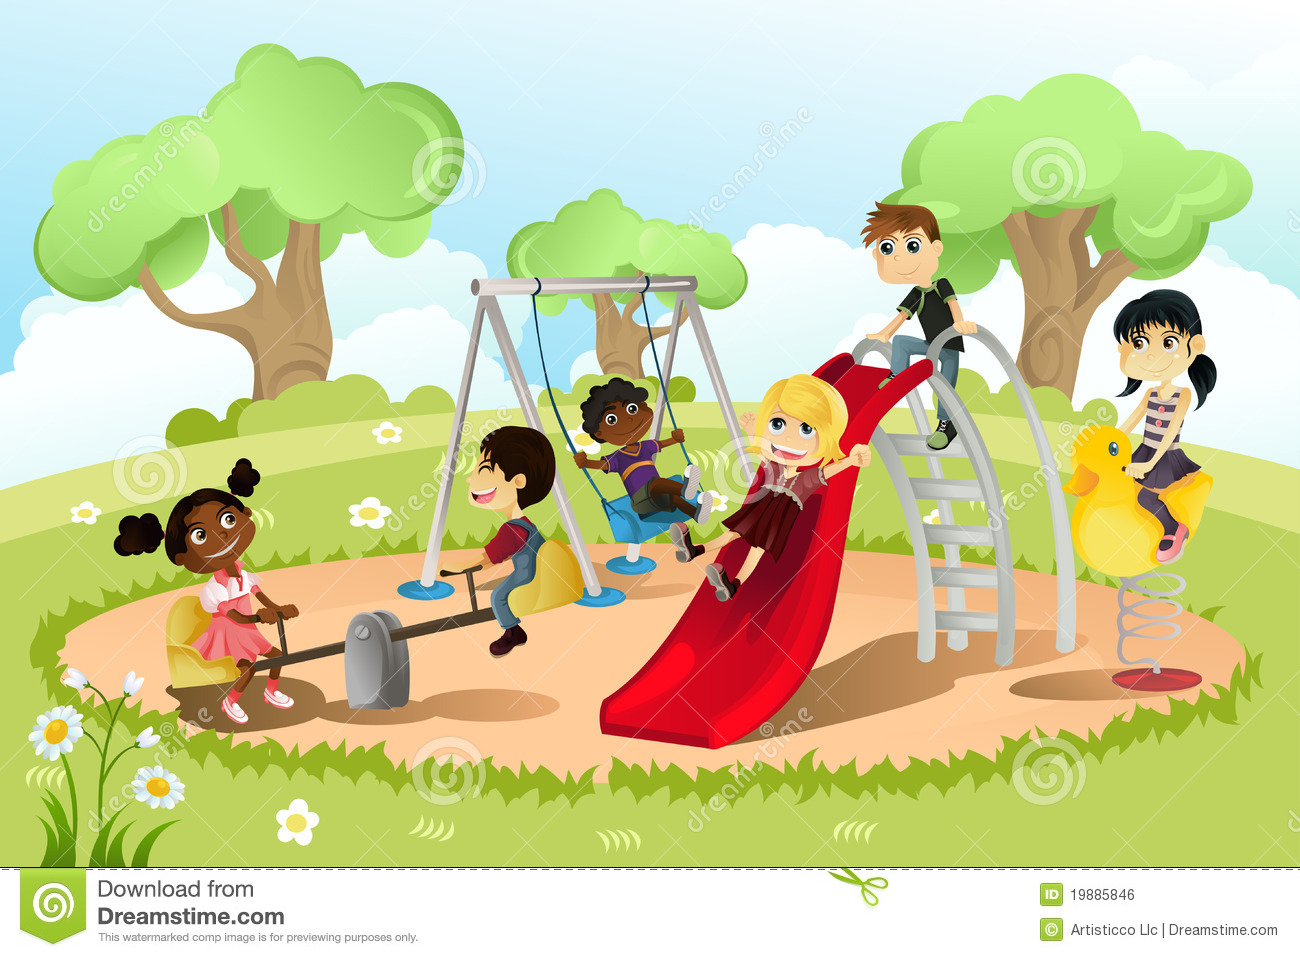 Kids playing in the park clipart clipart Children playing in the park clipart 14 » Clipart Station clipart